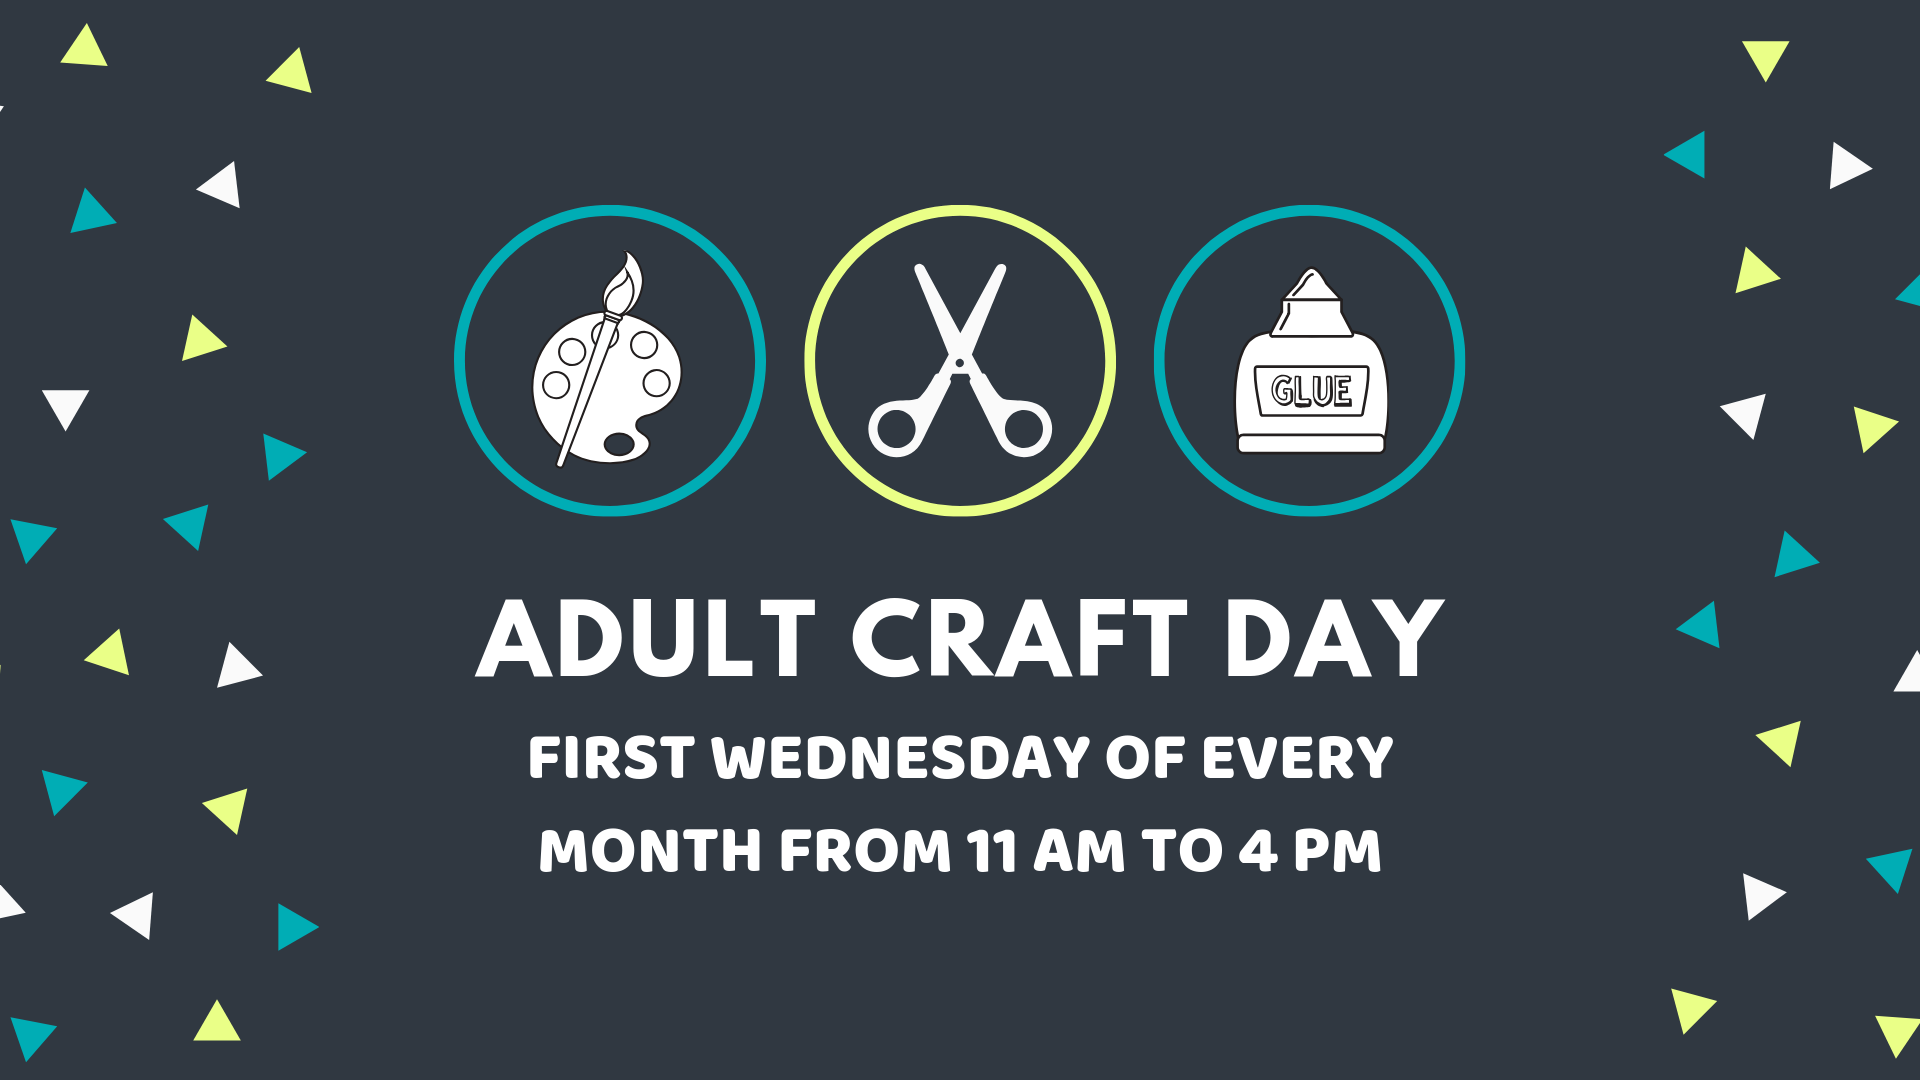 Adult Craft Day @ Adult Services Creative Space